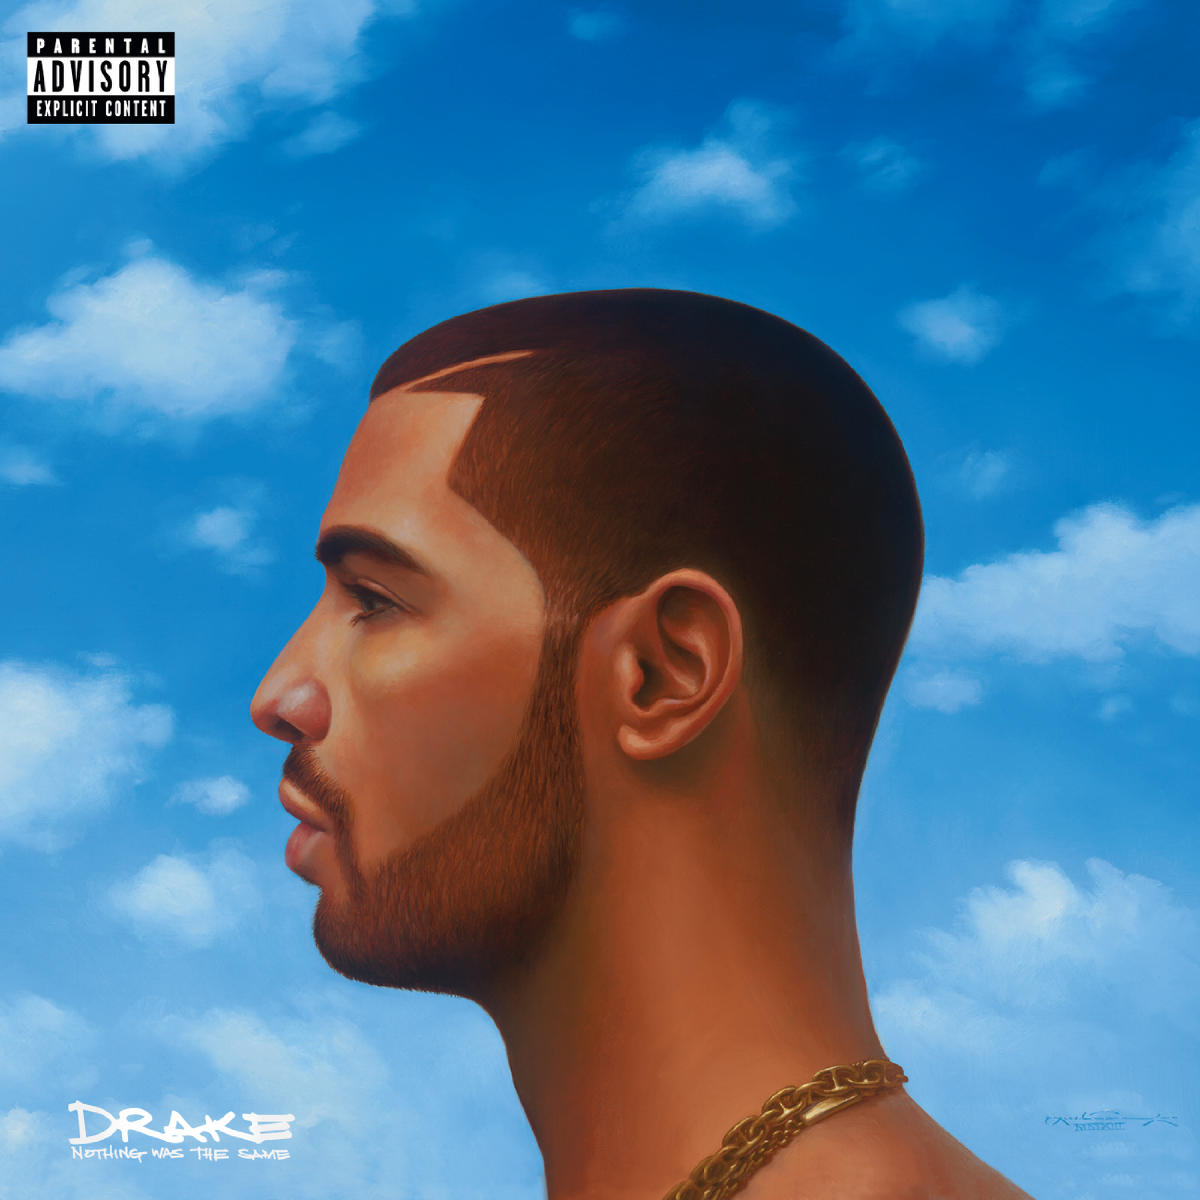 Hold On, We're Going Home (feat. Majid Jordan) by Majid Jordan, Drake